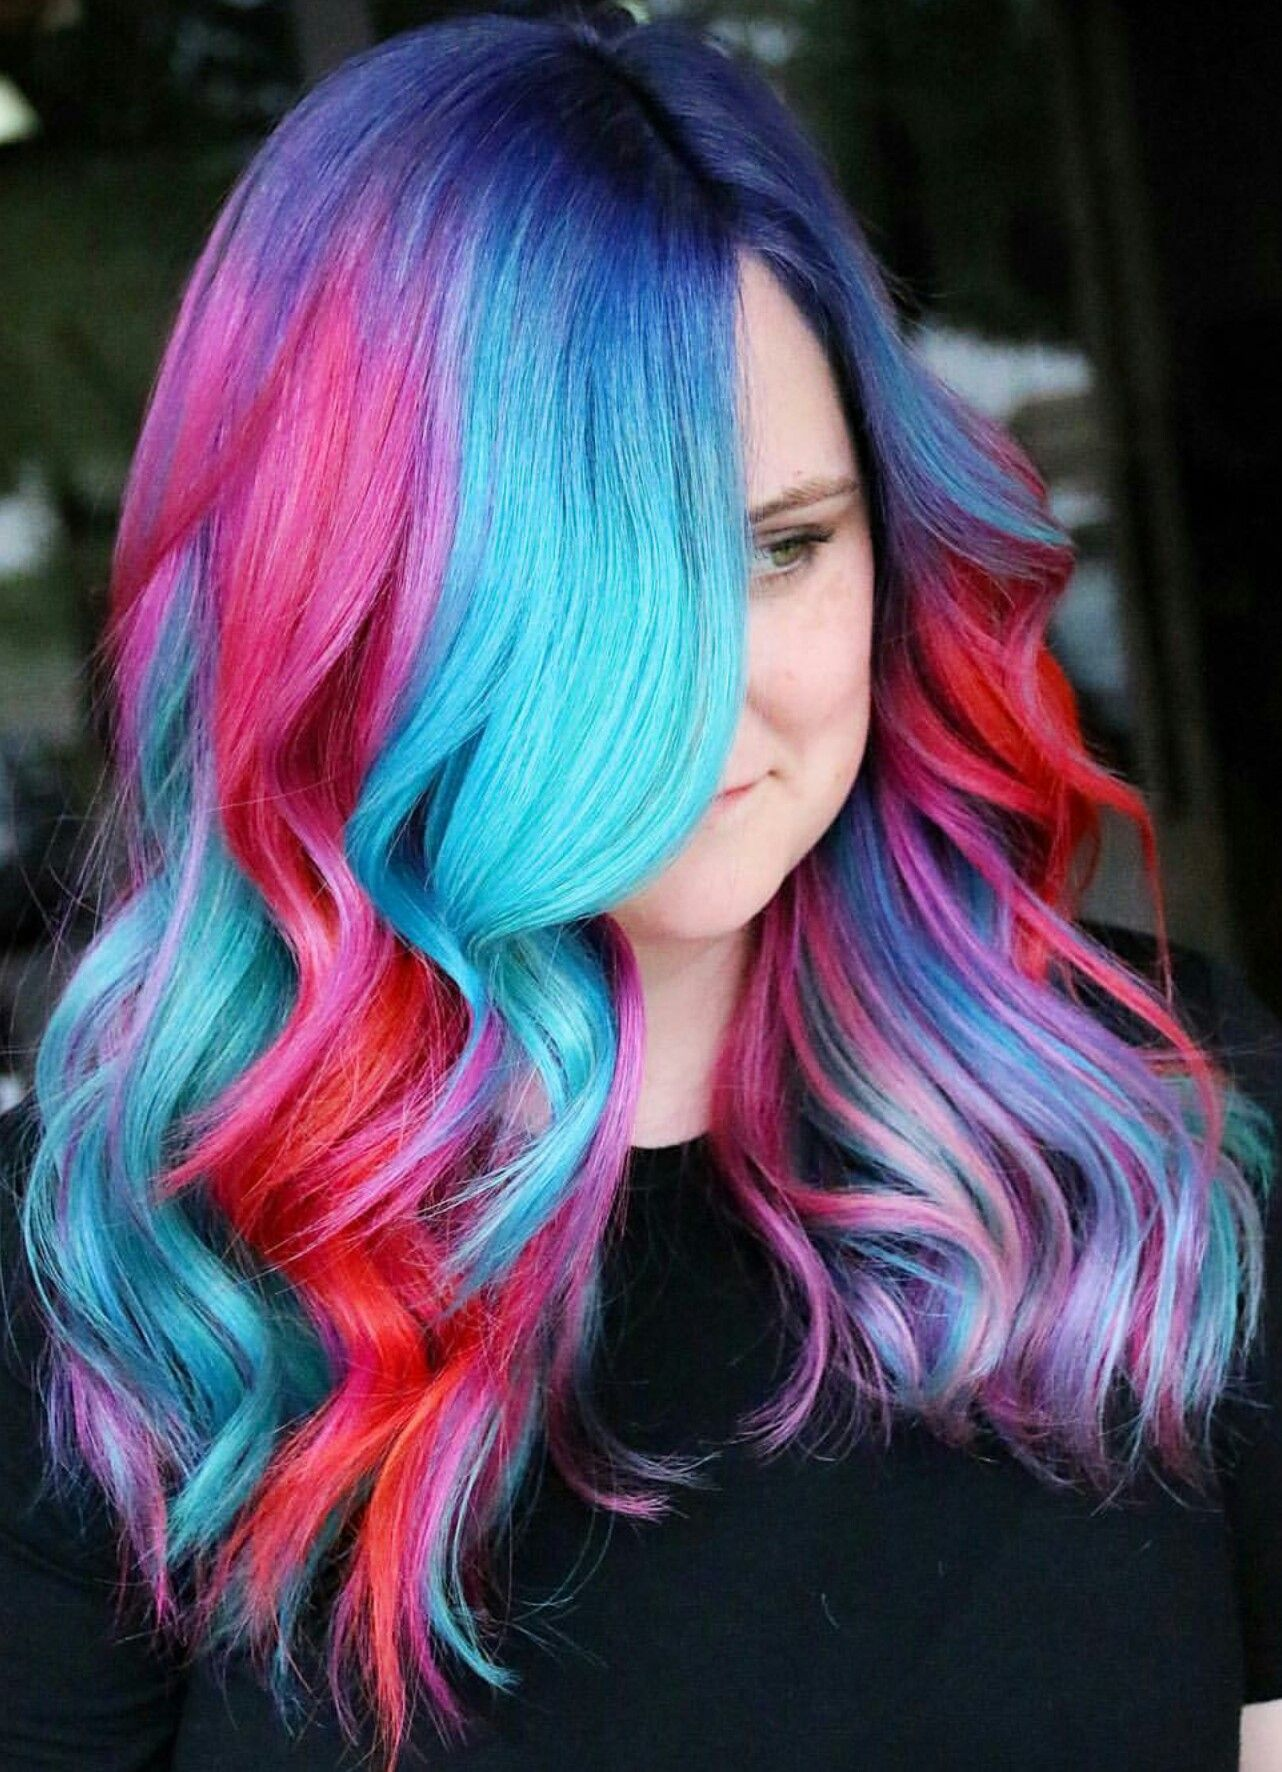 blue pink multi dyed hair color @makeupbyfrances | hair dye ideas